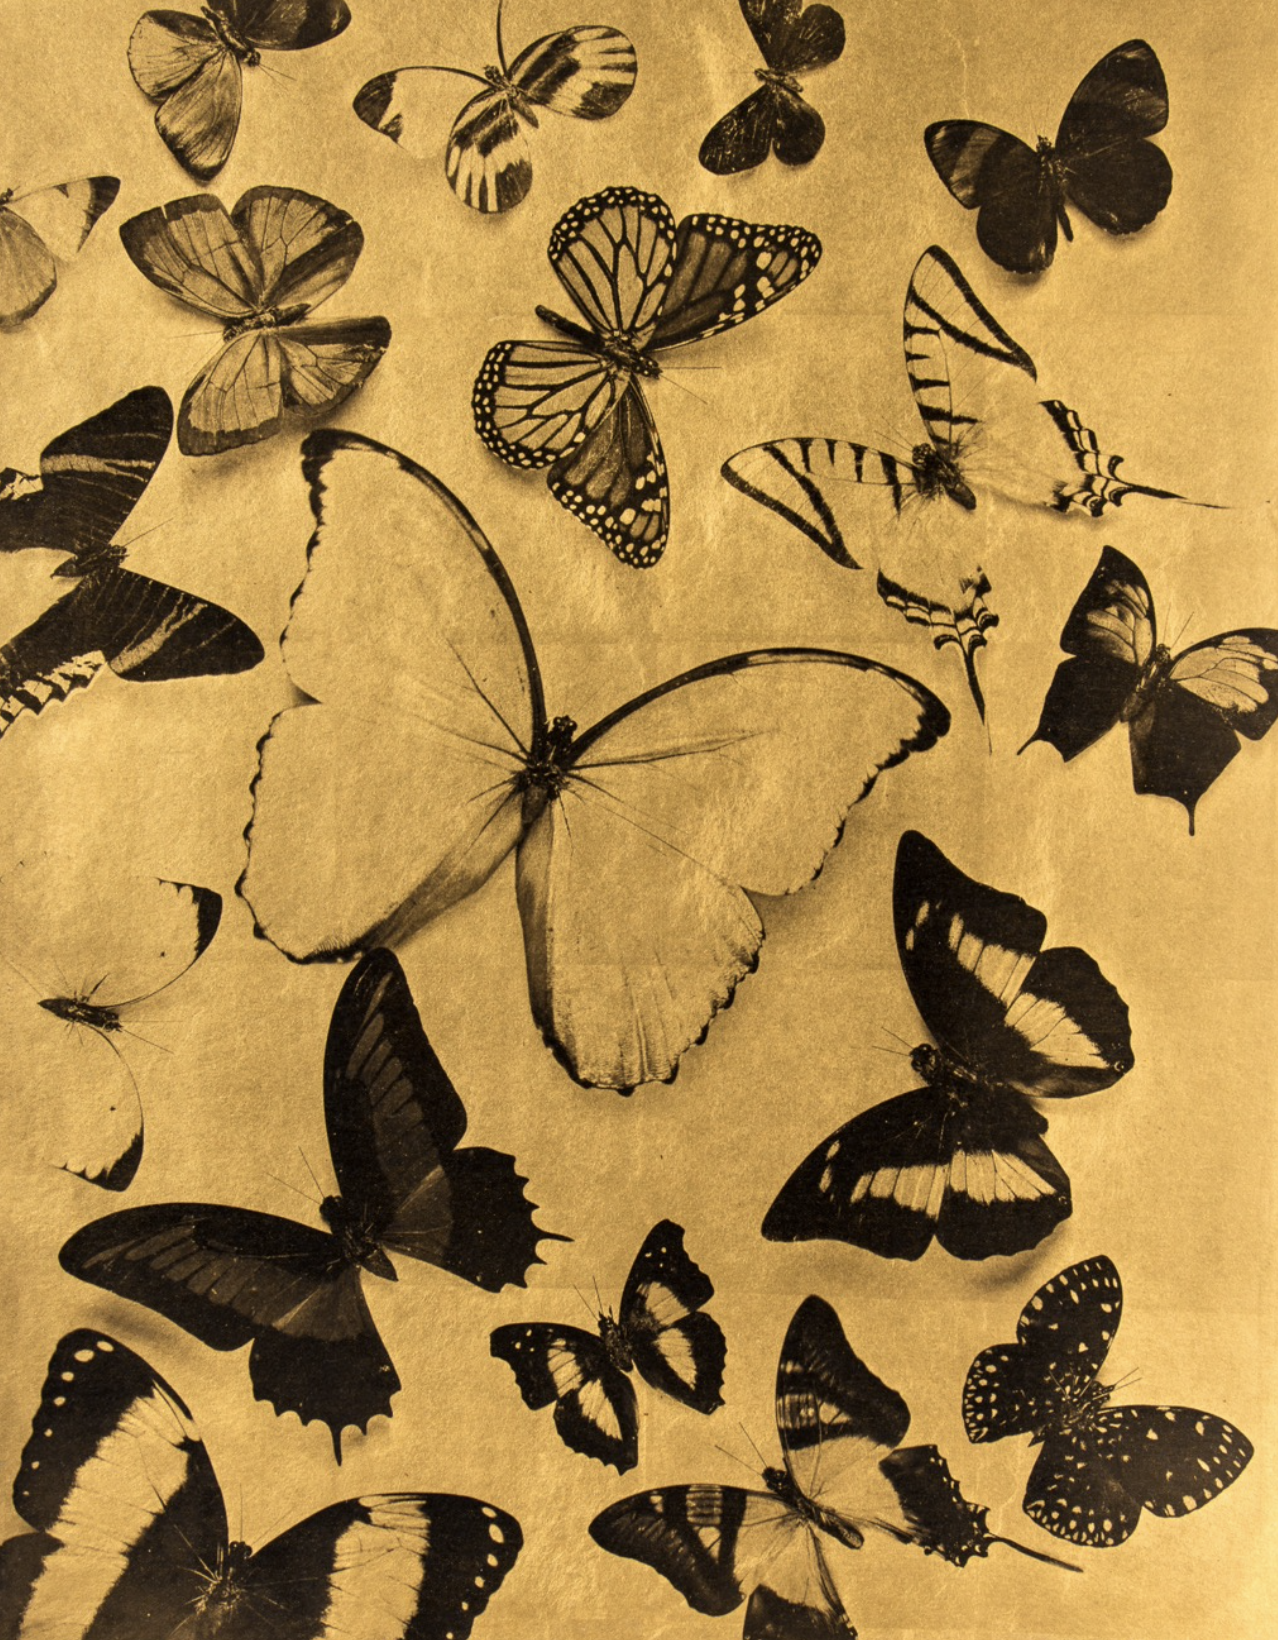 Palladium print & pure gold leaf on Japanese paper